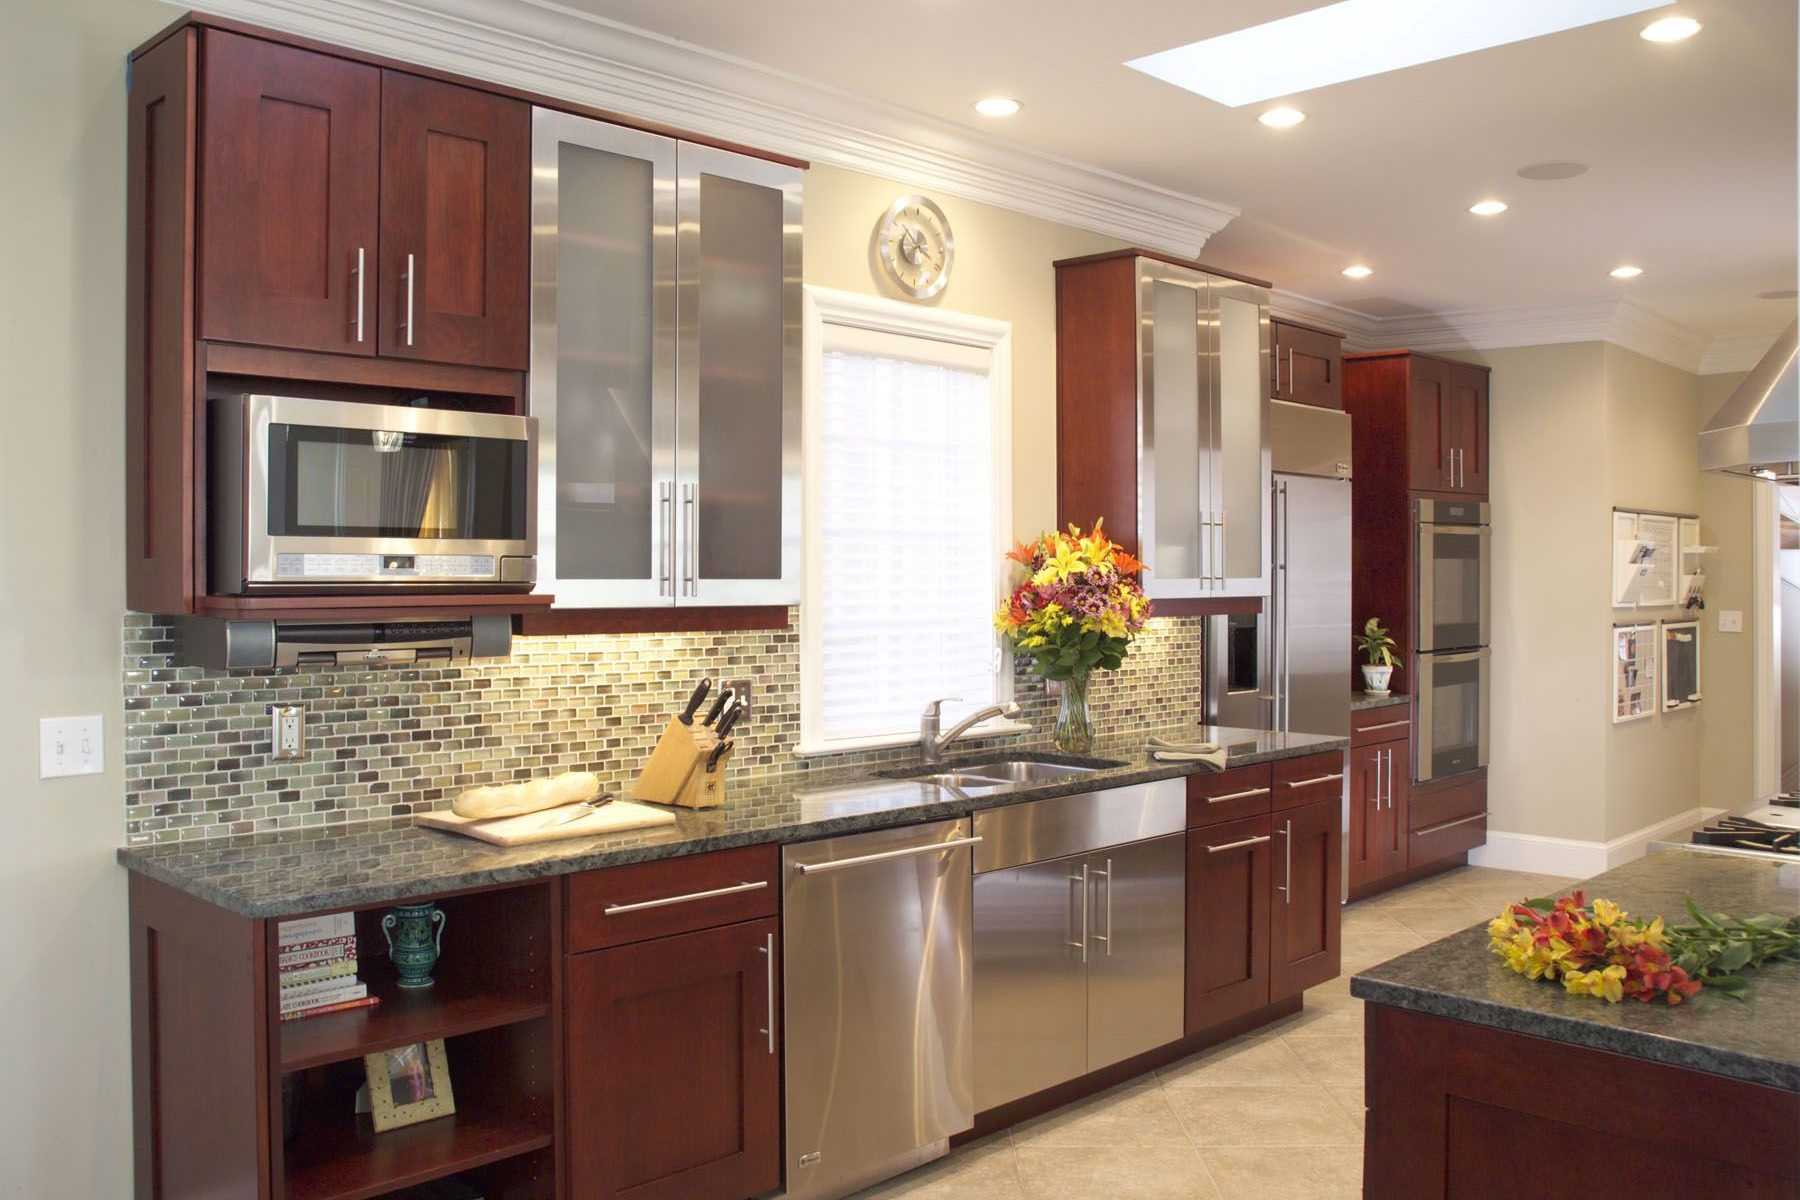 All Wood Kitchen Cabinets - Set Perfect Style And Tone In Your Kitchen